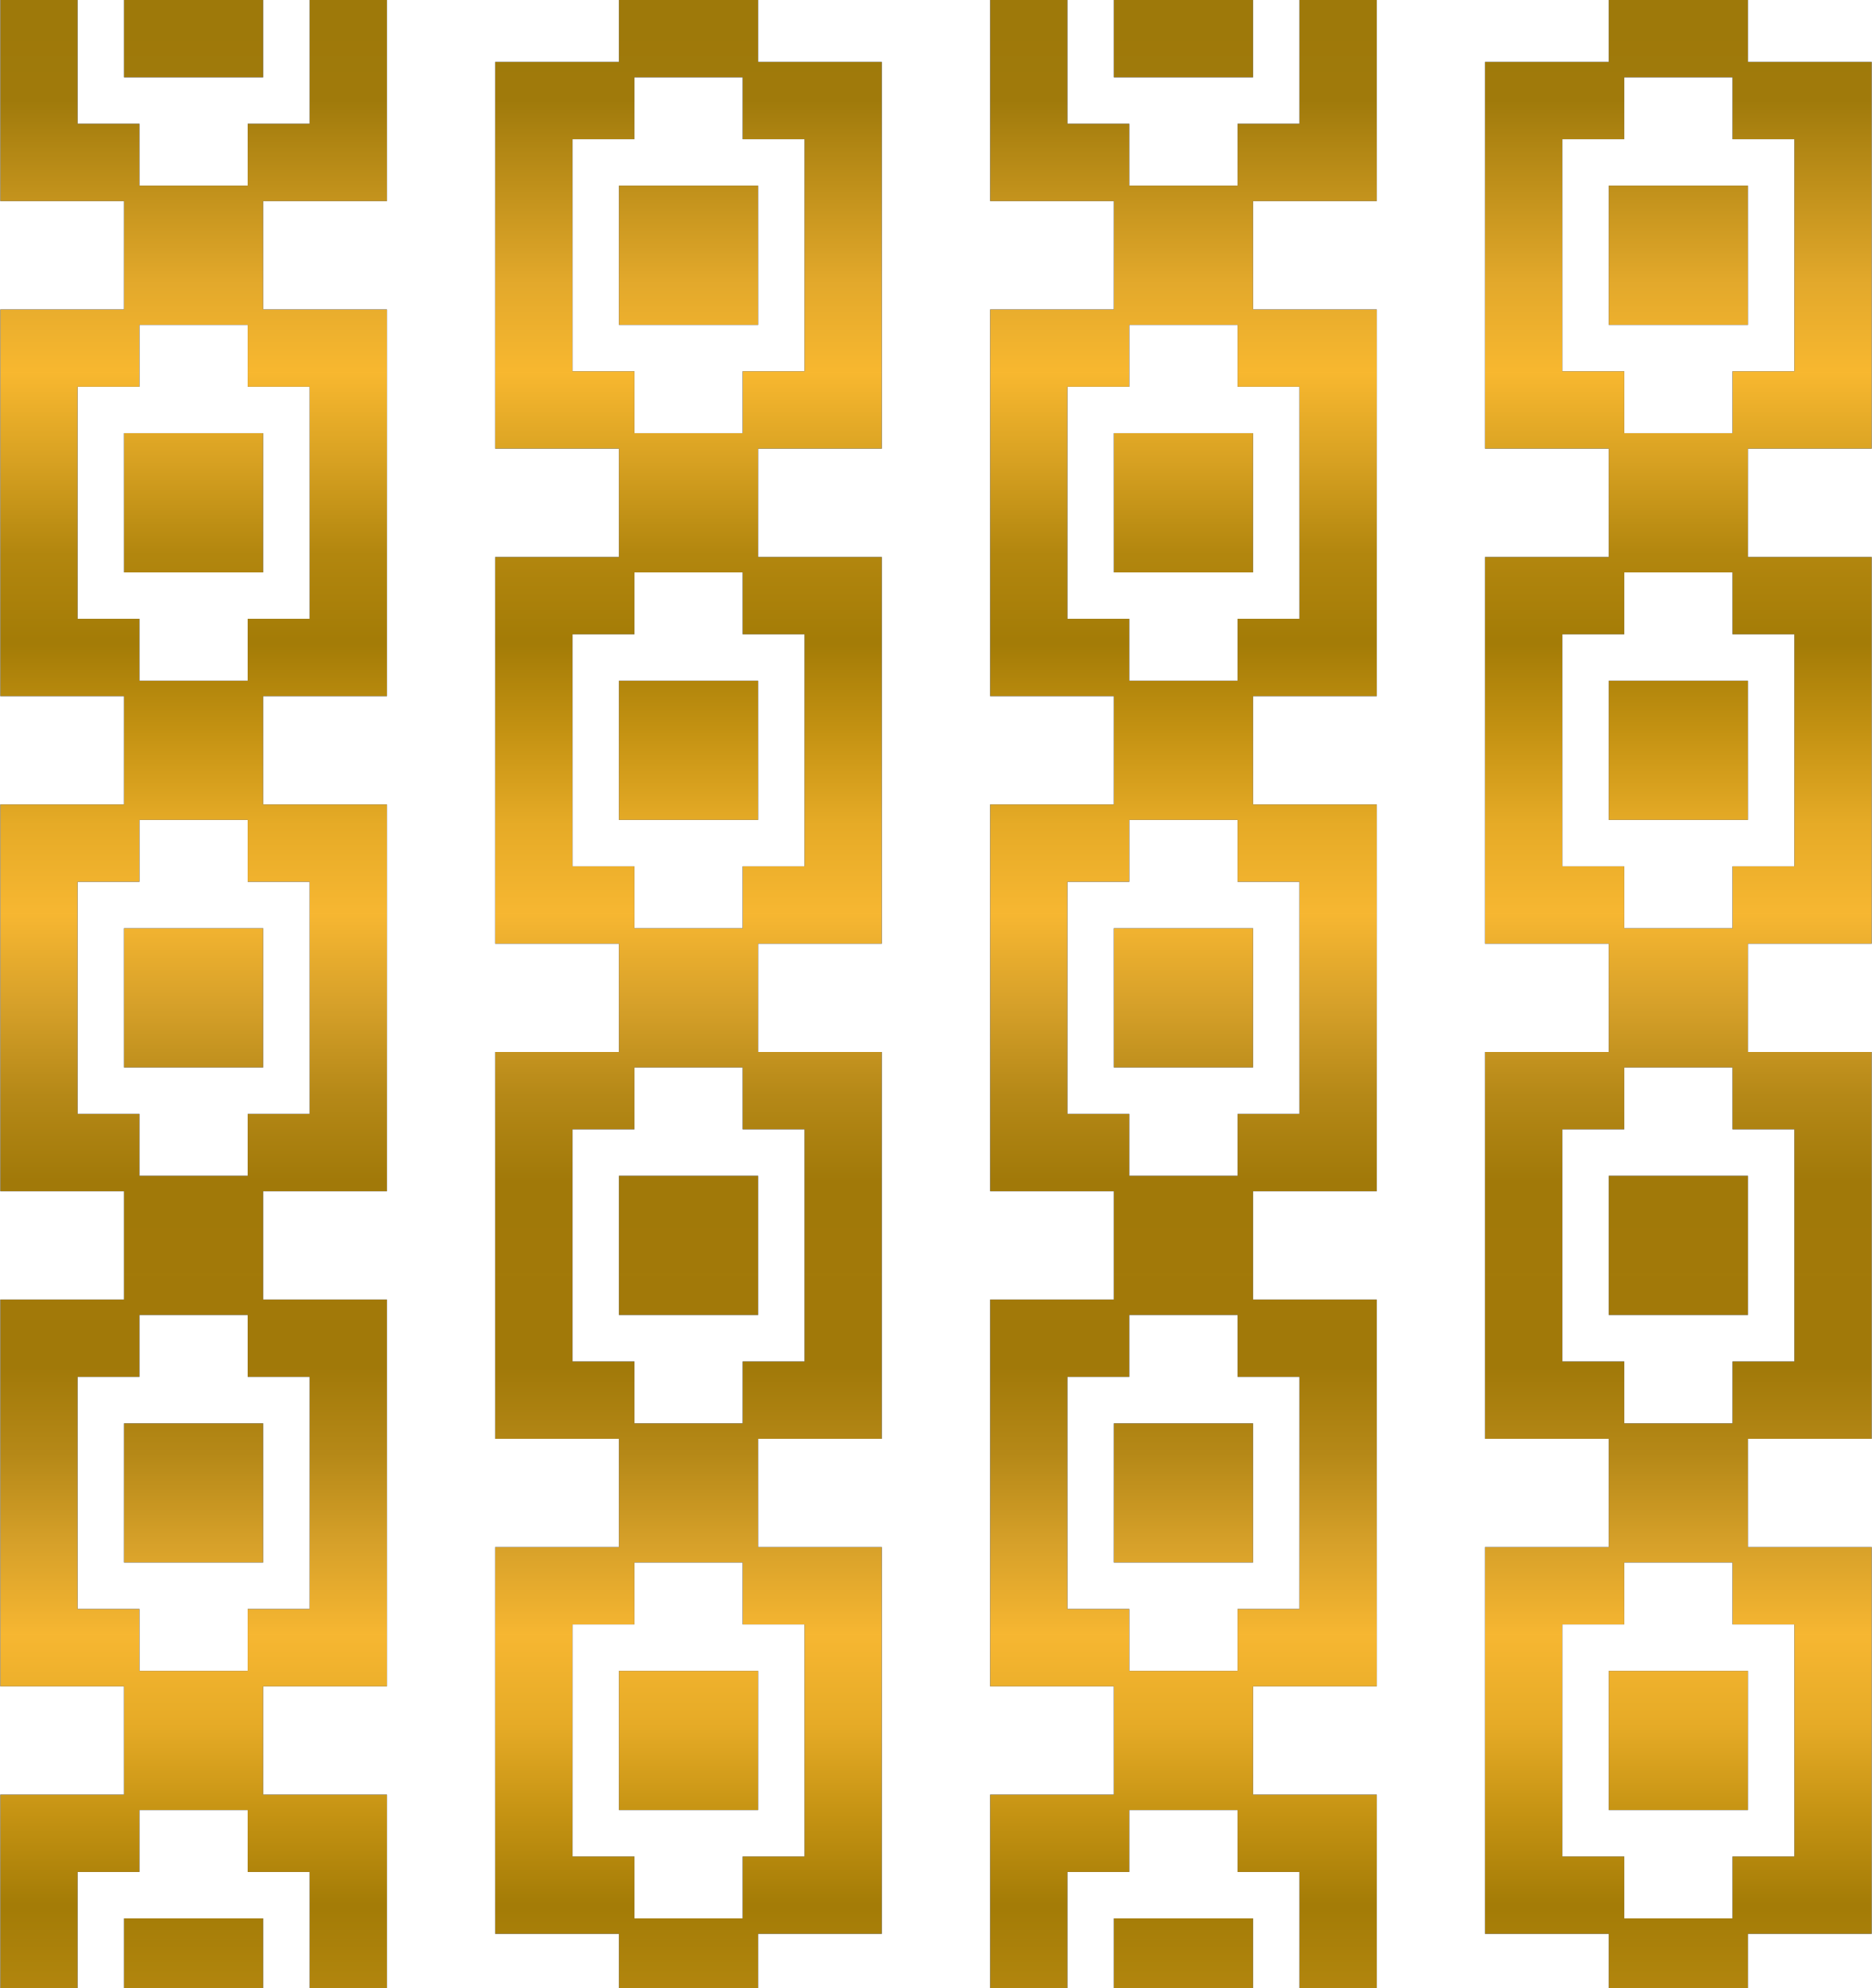 Brass Square Pattern by Arvin61r58